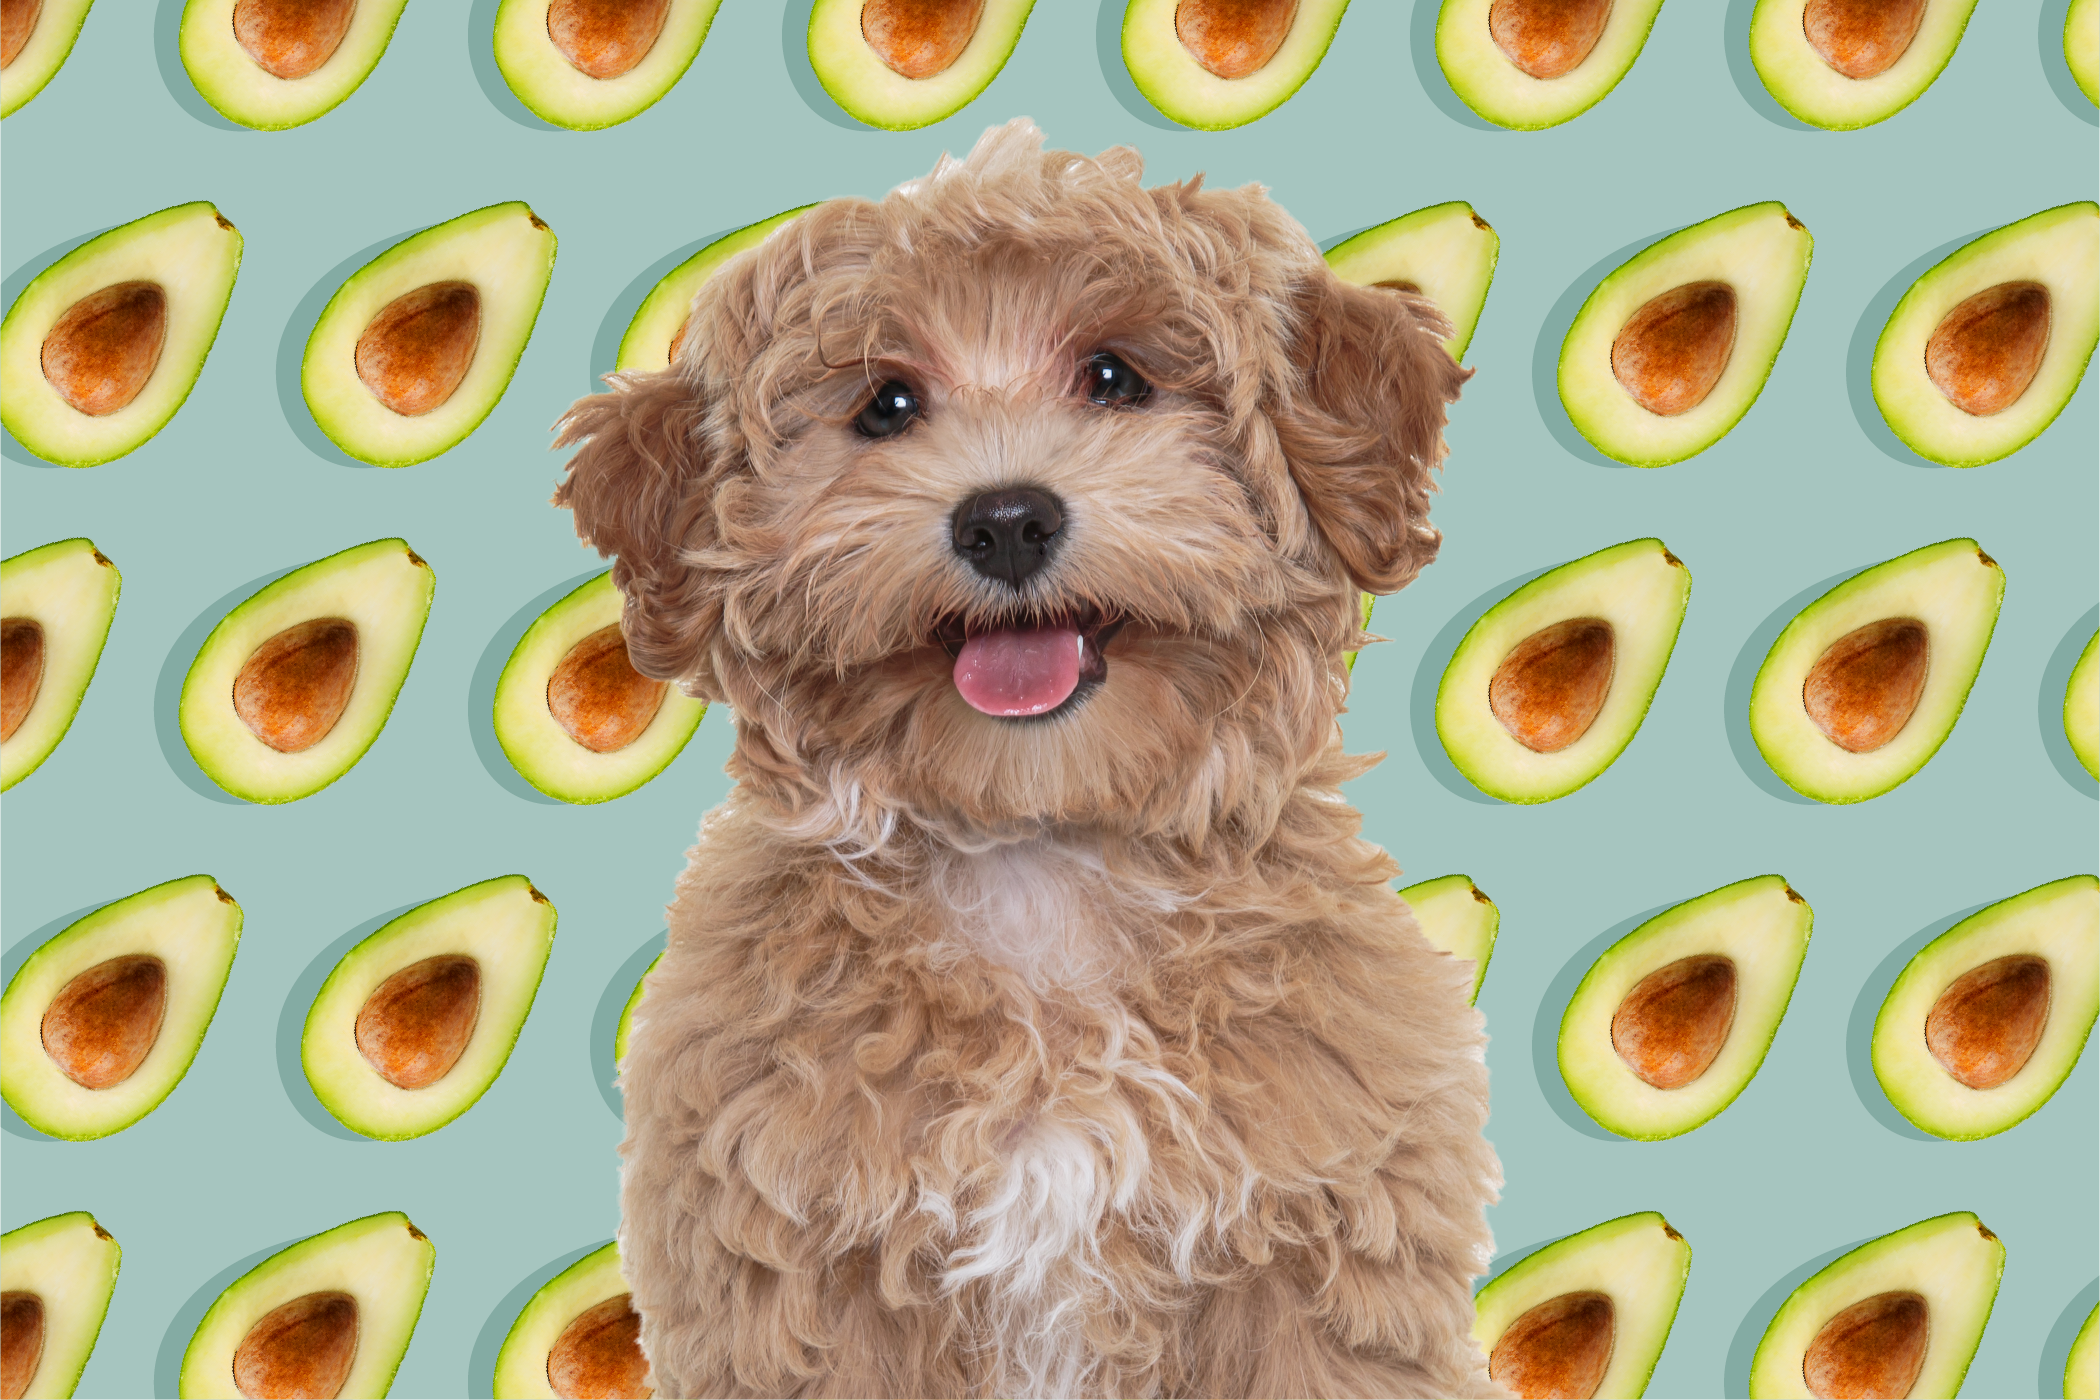 dog with avocado pattern in background